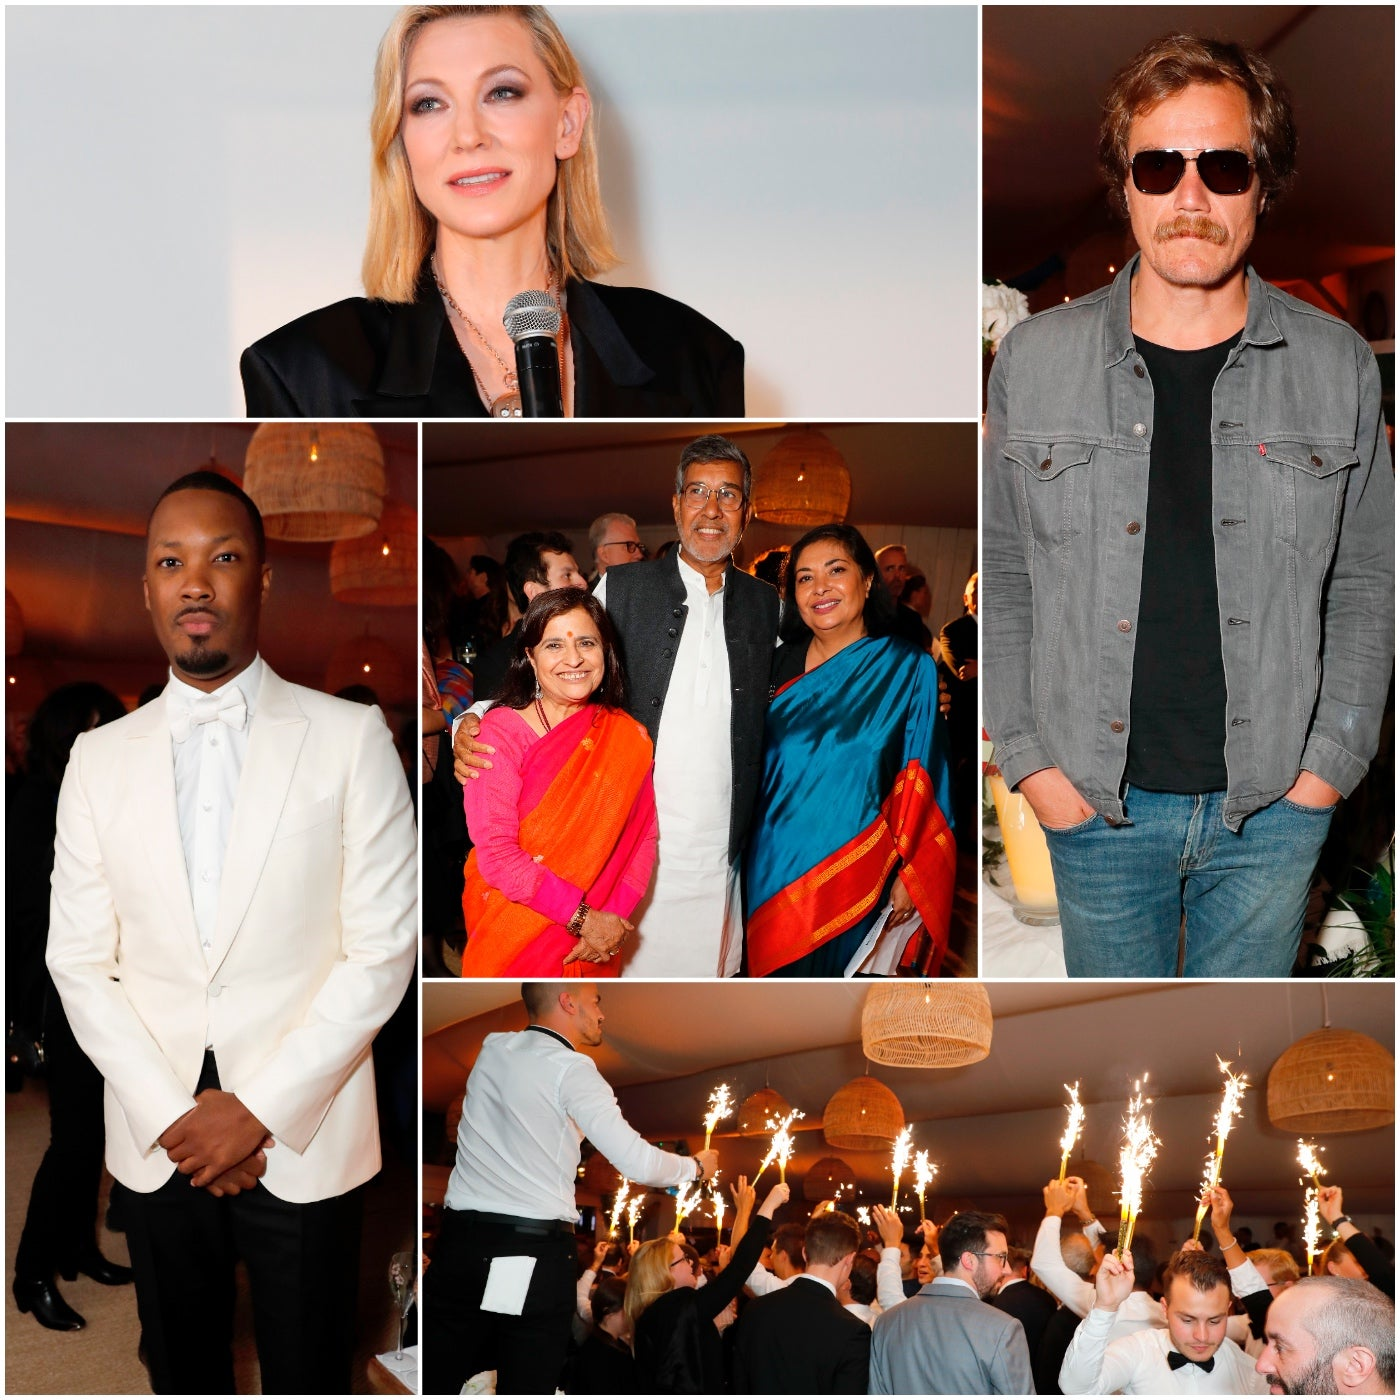 Scenes from the hFPAS event at Cannes 2018